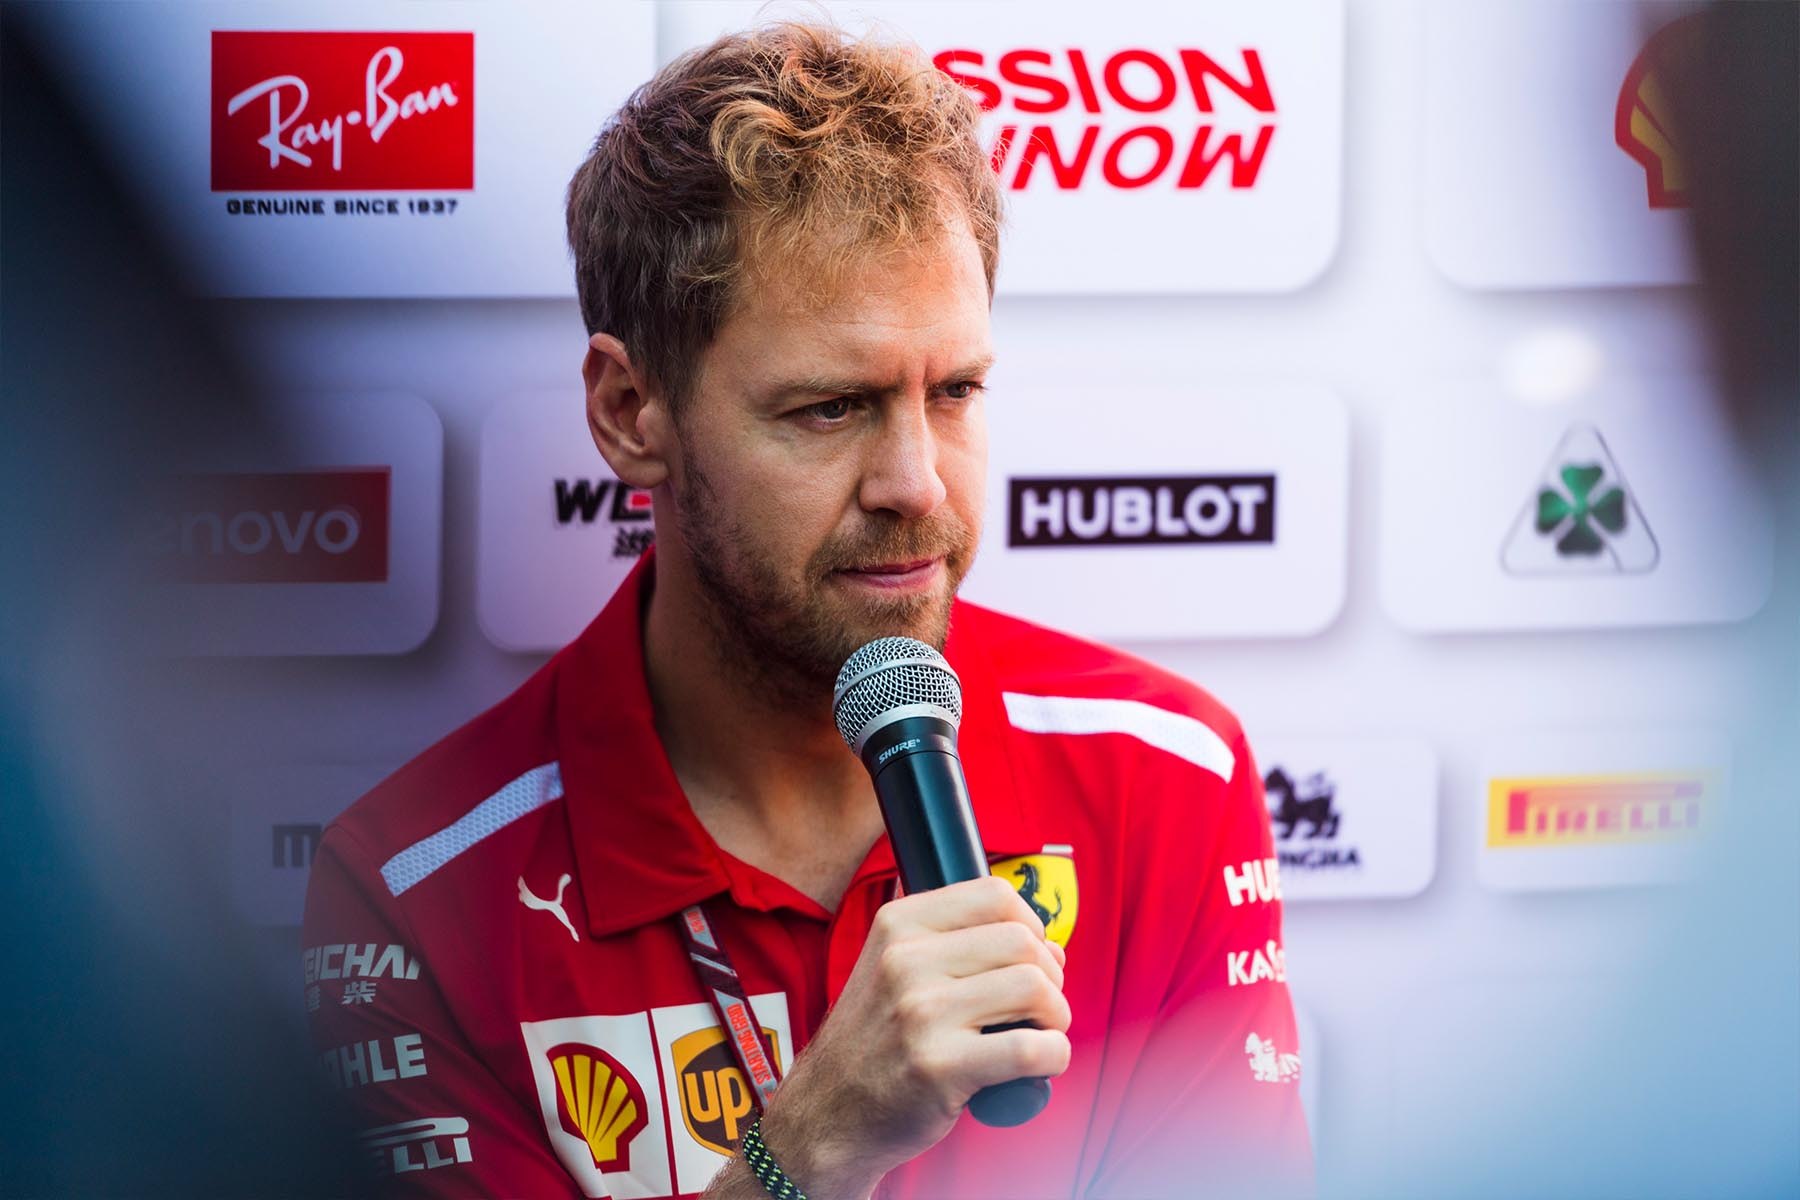 Sebastian Vettel at the 2018 Mexican Grand Prix.